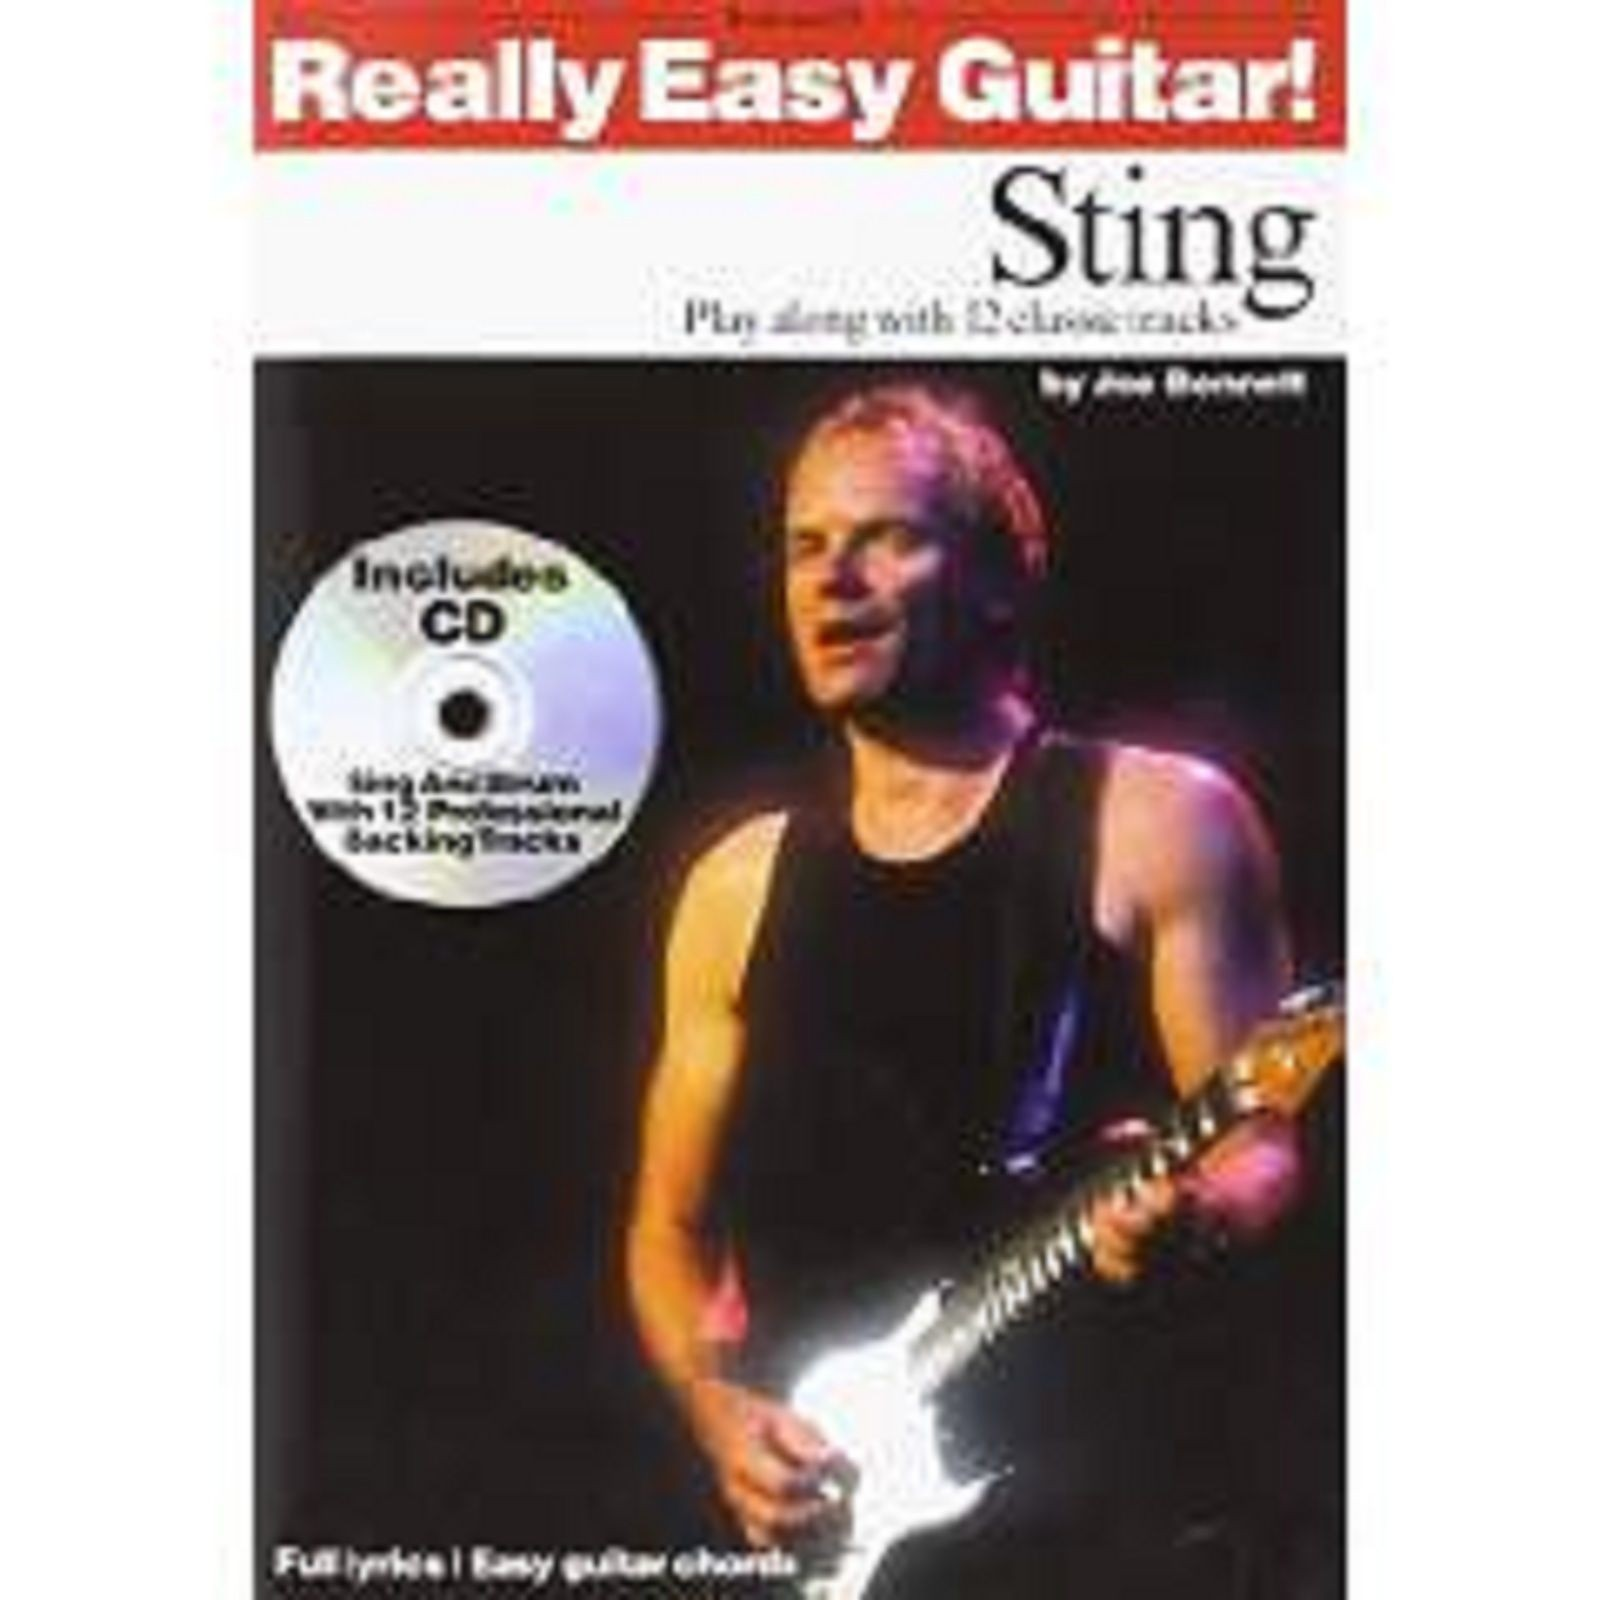 Really Easy Guitar! Sting Book CD Sheet Music Chords Beginner Rock Pop Police 61